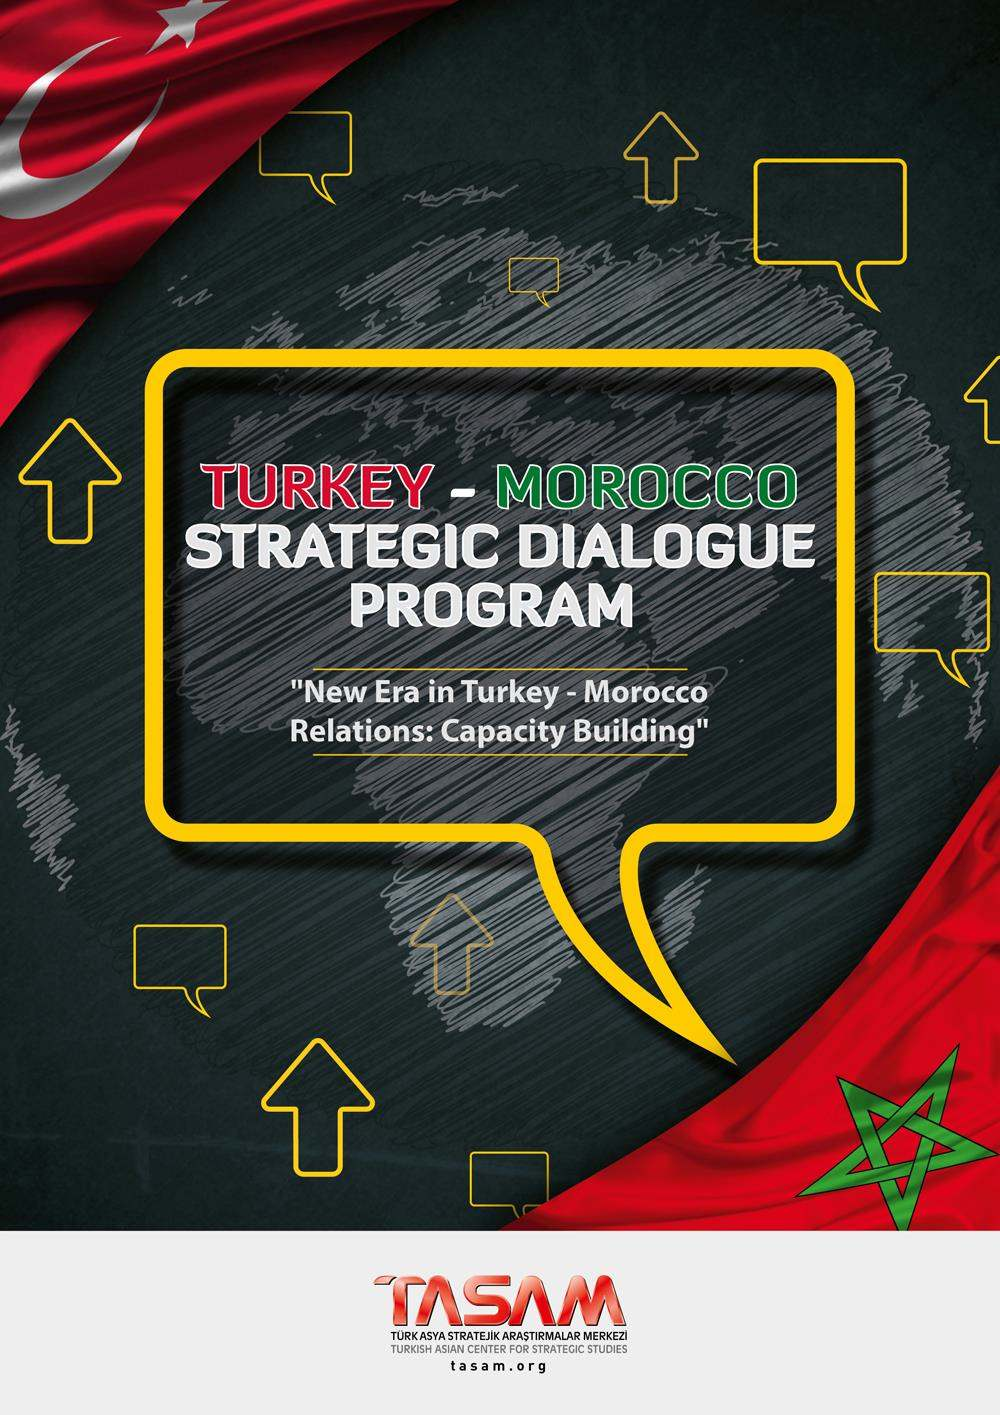 Turkey - Morocco Strategic Dialogue Program